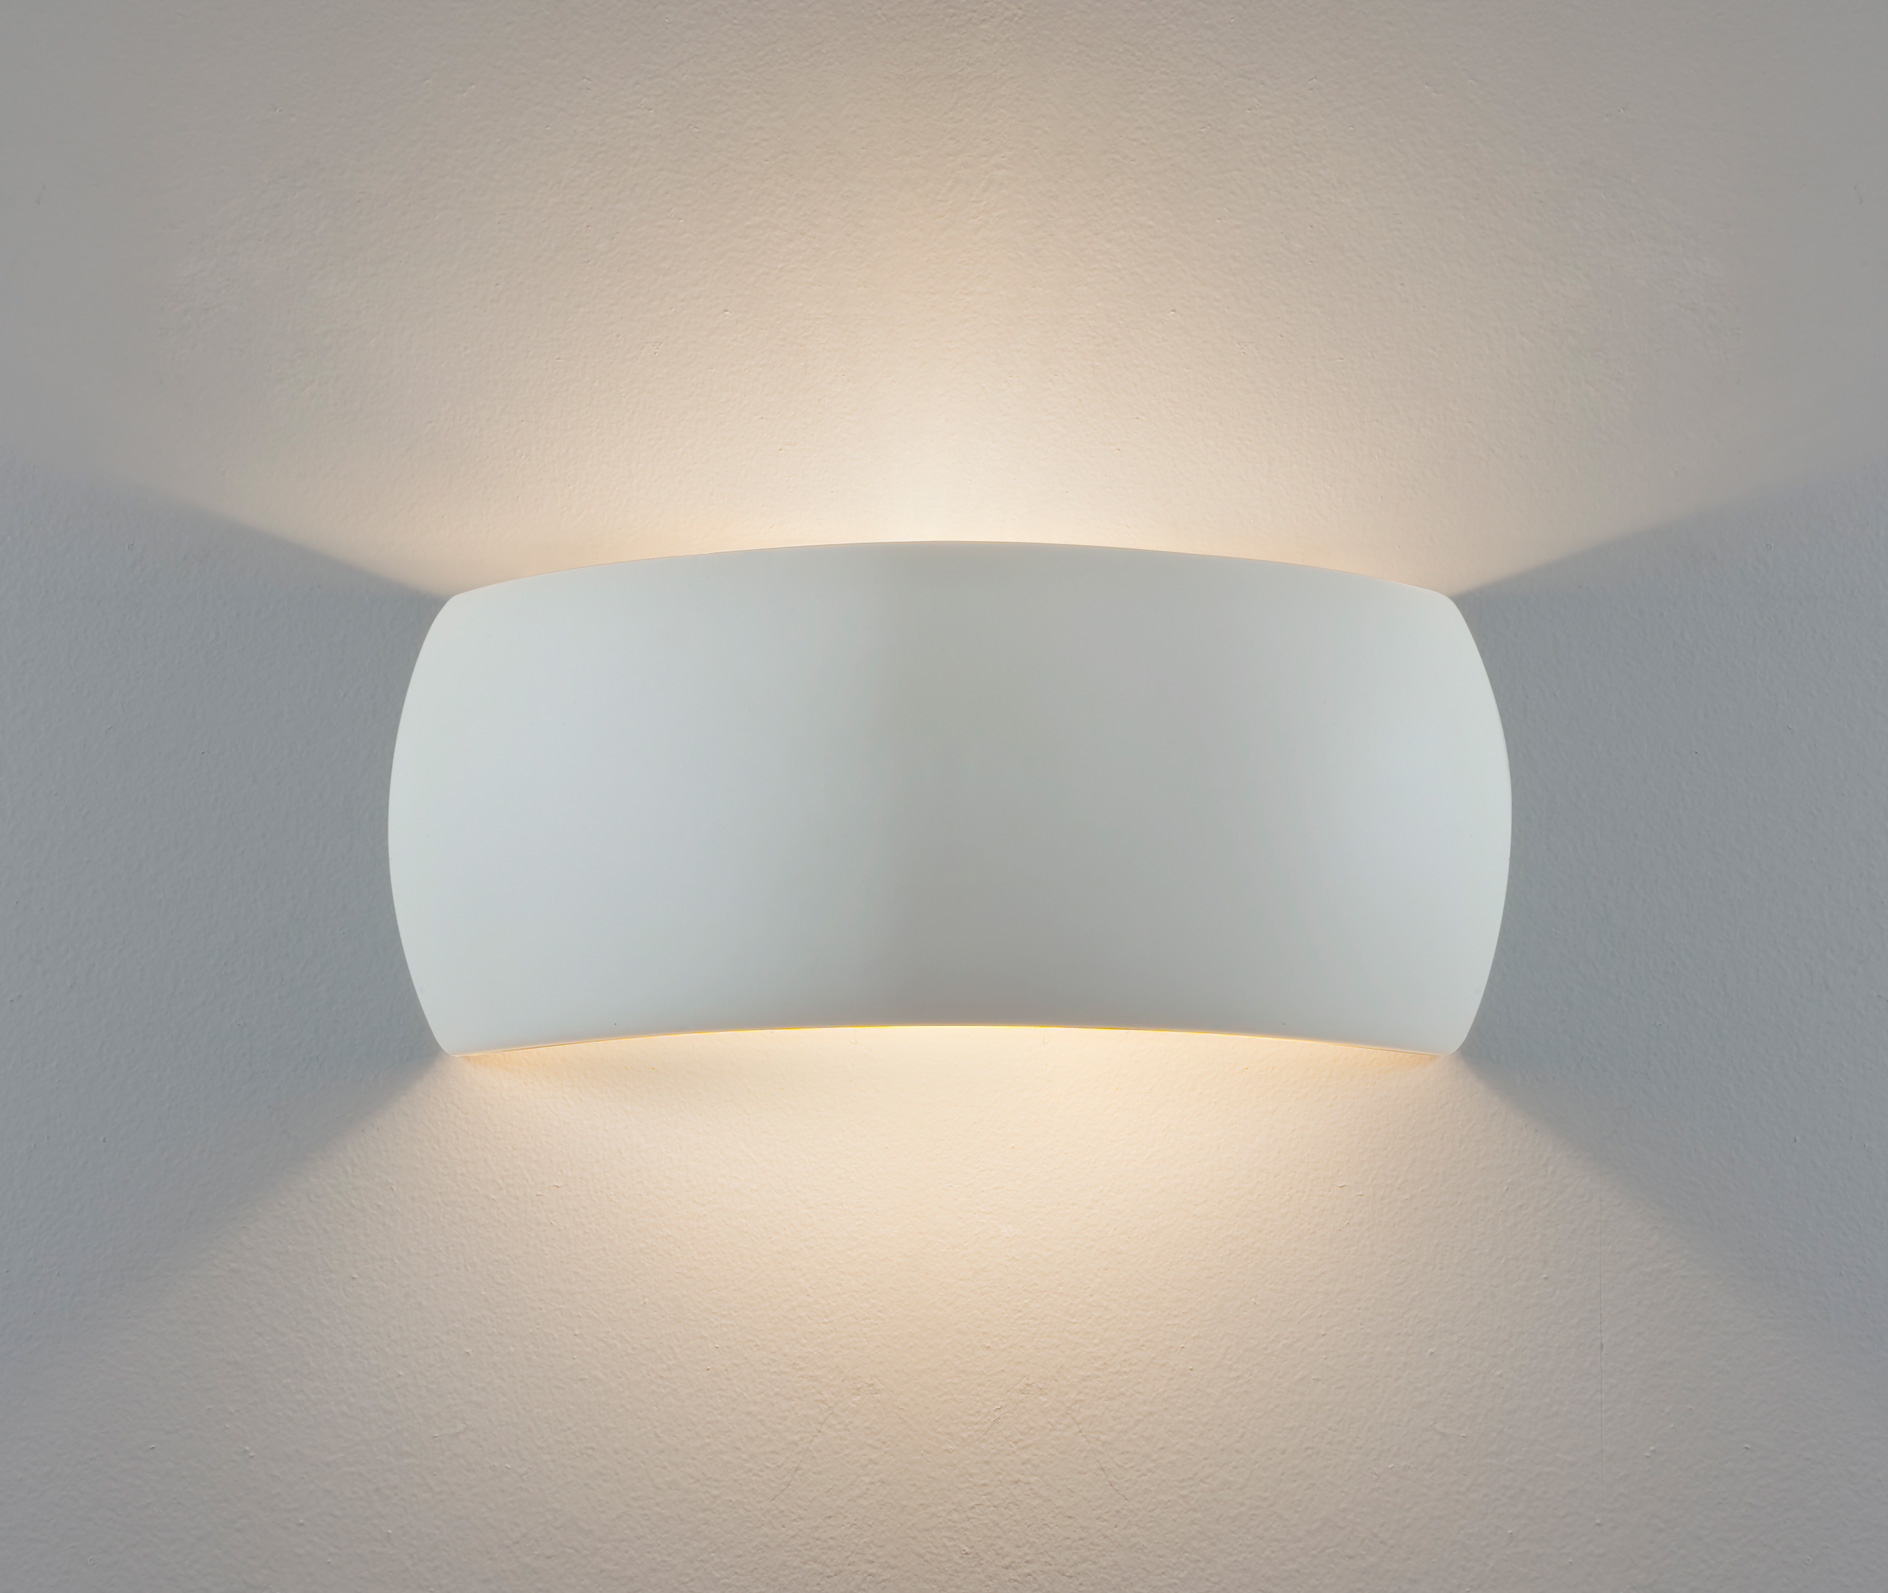 Astro Milo ceramic plaster wall light up down white 60W E27 can be painted eBay